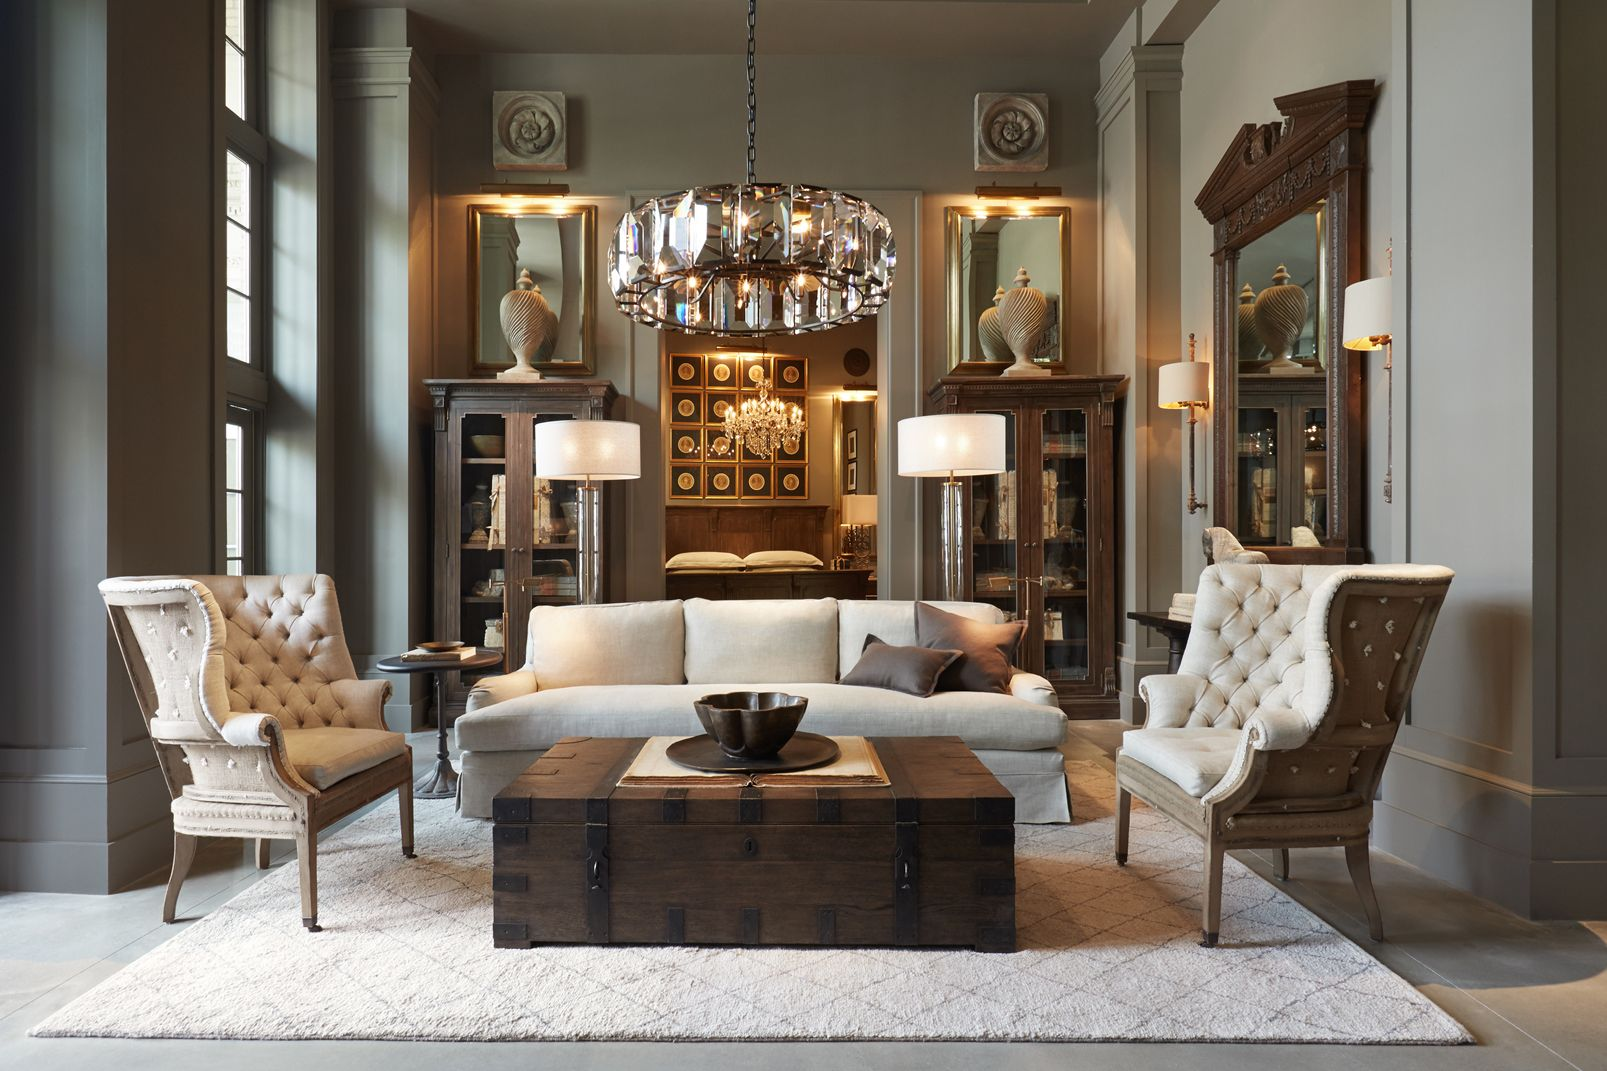 The 5 Most Expensive Furniture Brands In The World